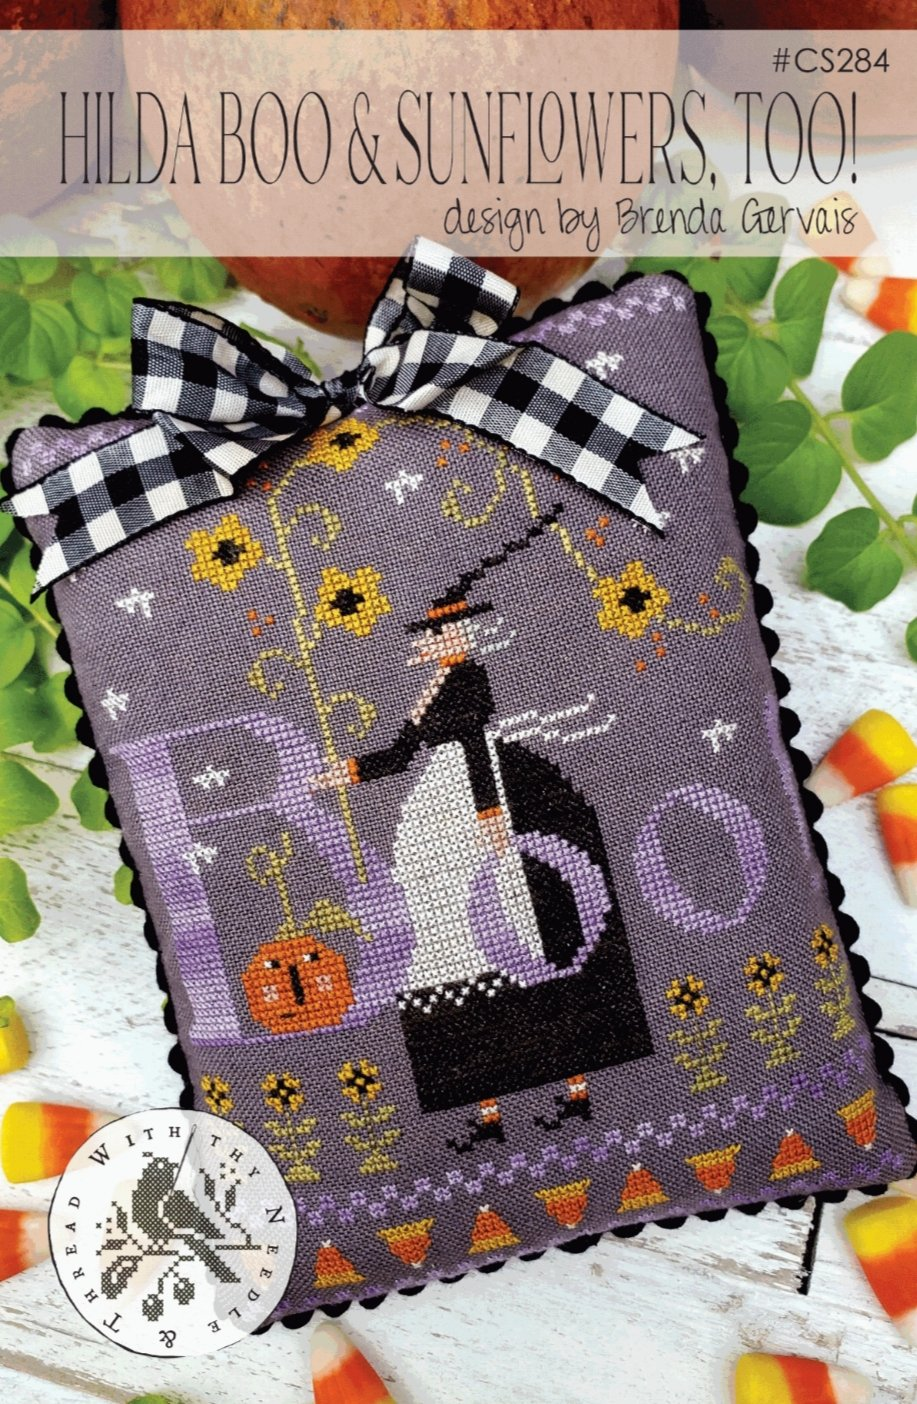 With Thy Needle and Thread - Hilda Boo & Sunflowers Too!